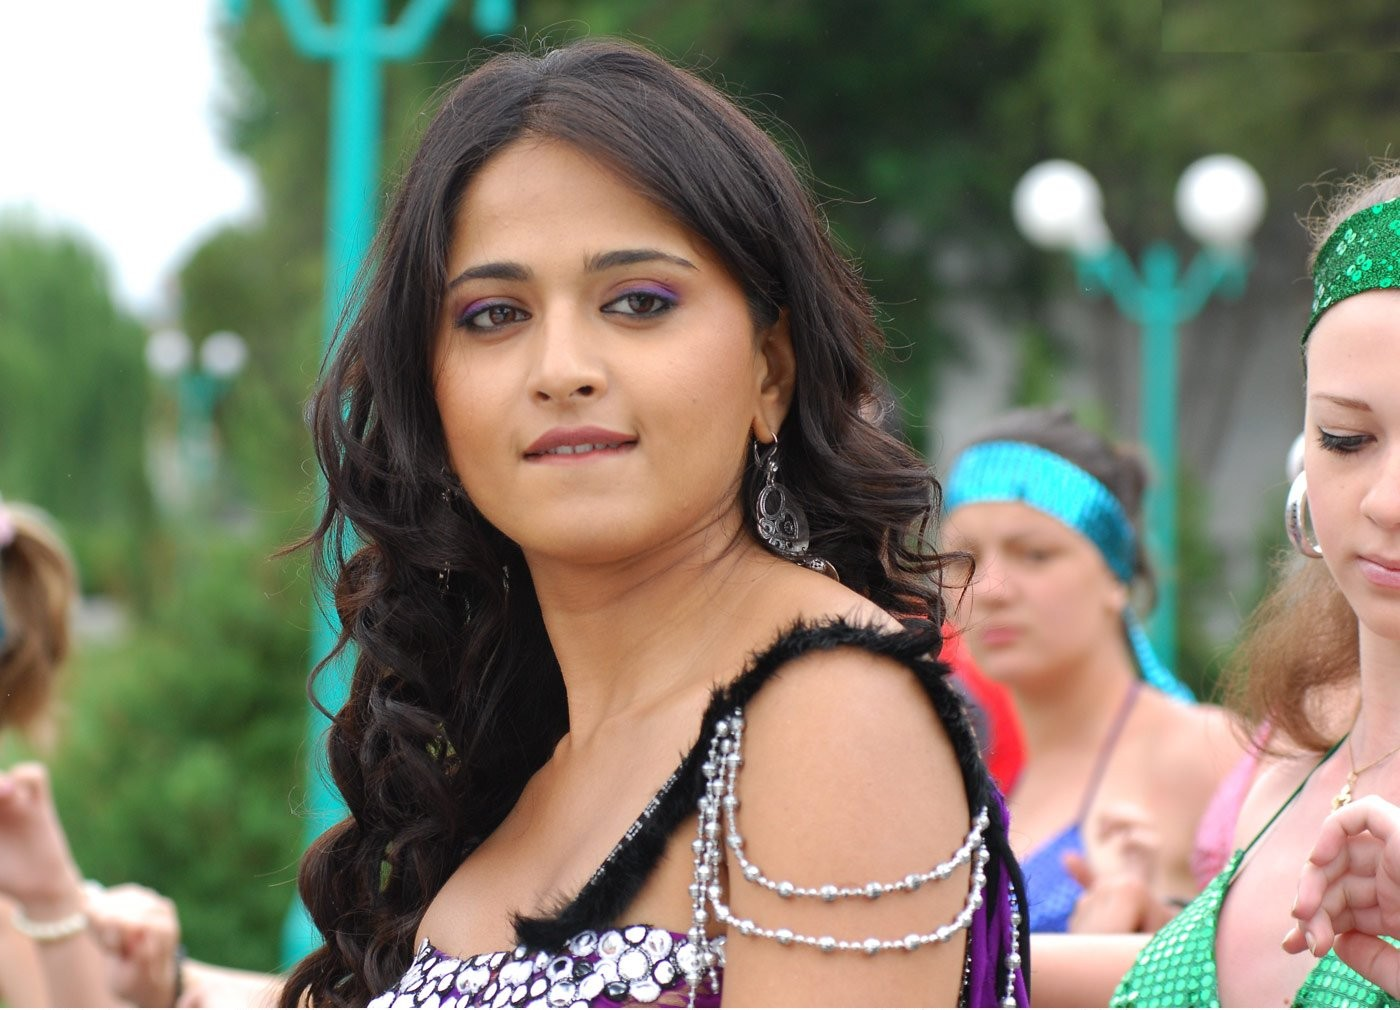 Telugu Actress Jyothi Lakshmi Hot Stills In Movie | NETTV4U